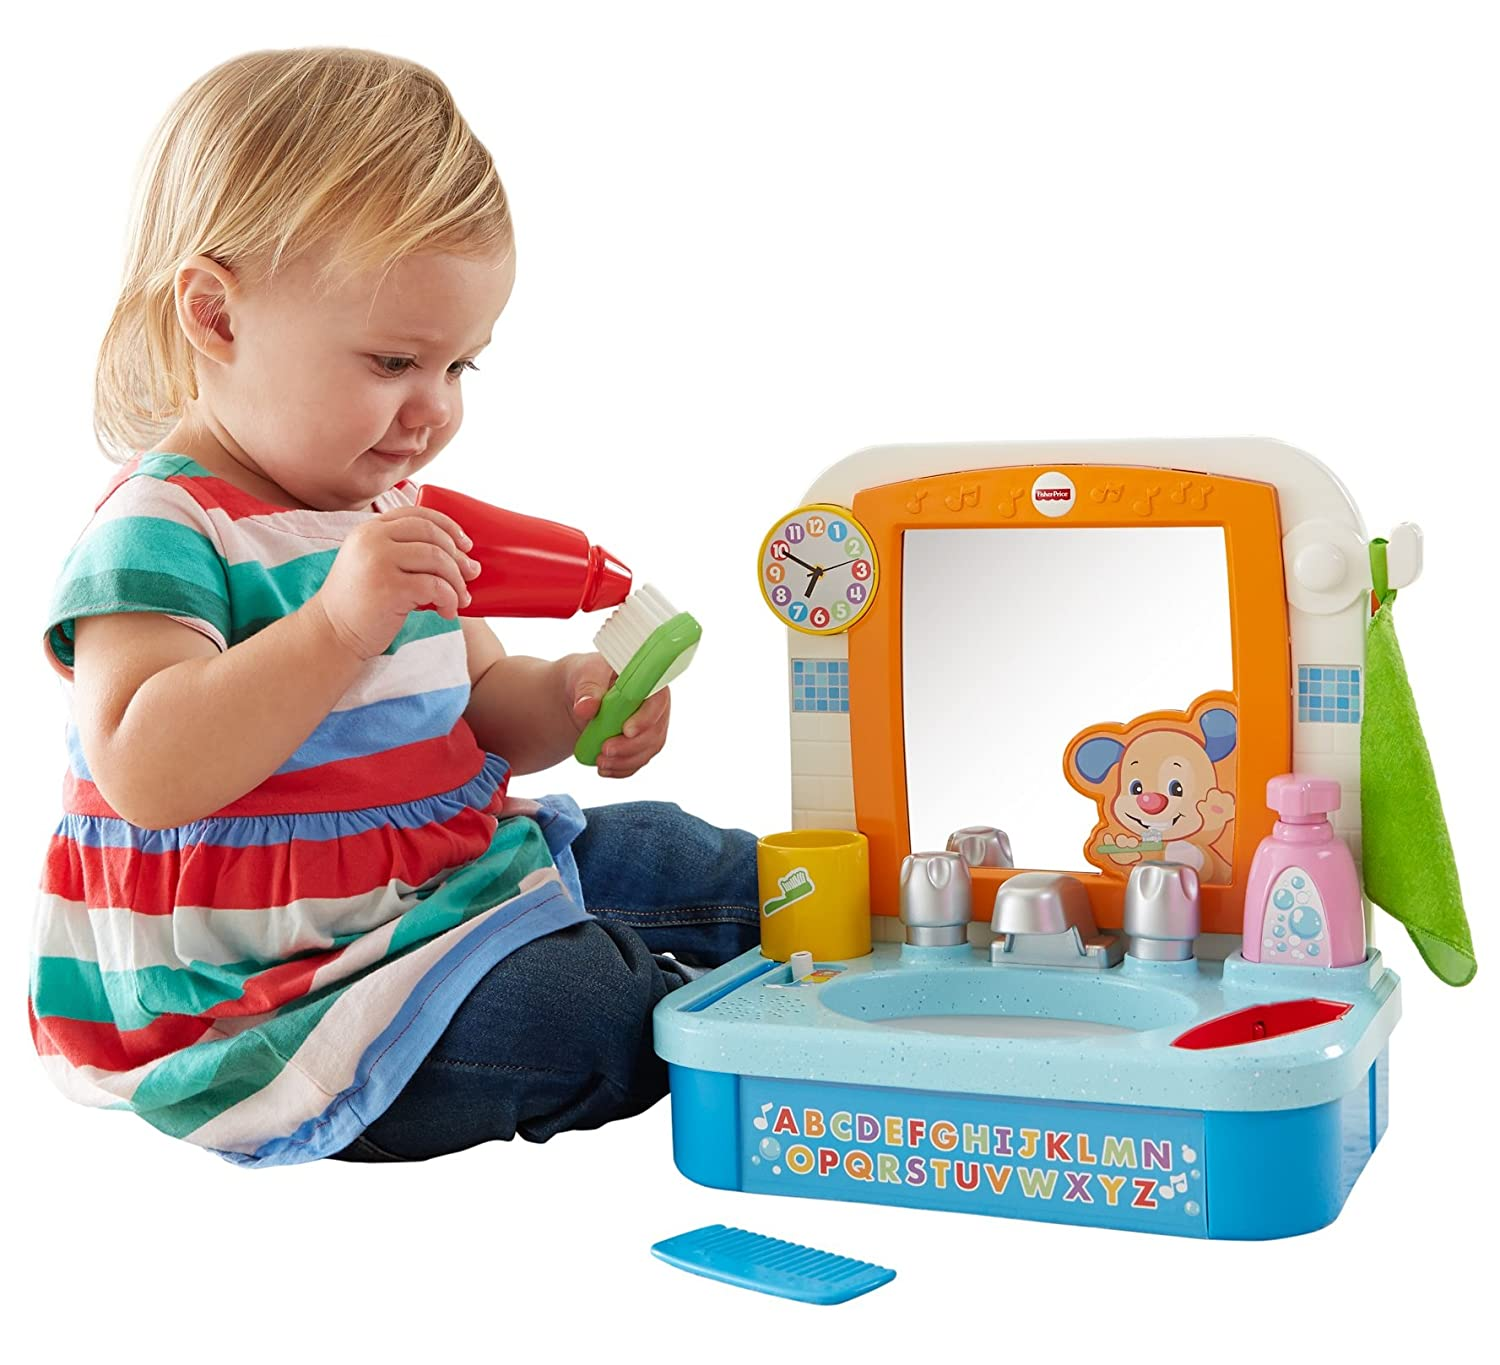 Toys For Girls 1 3 : Whatre the best toys for year old girls in